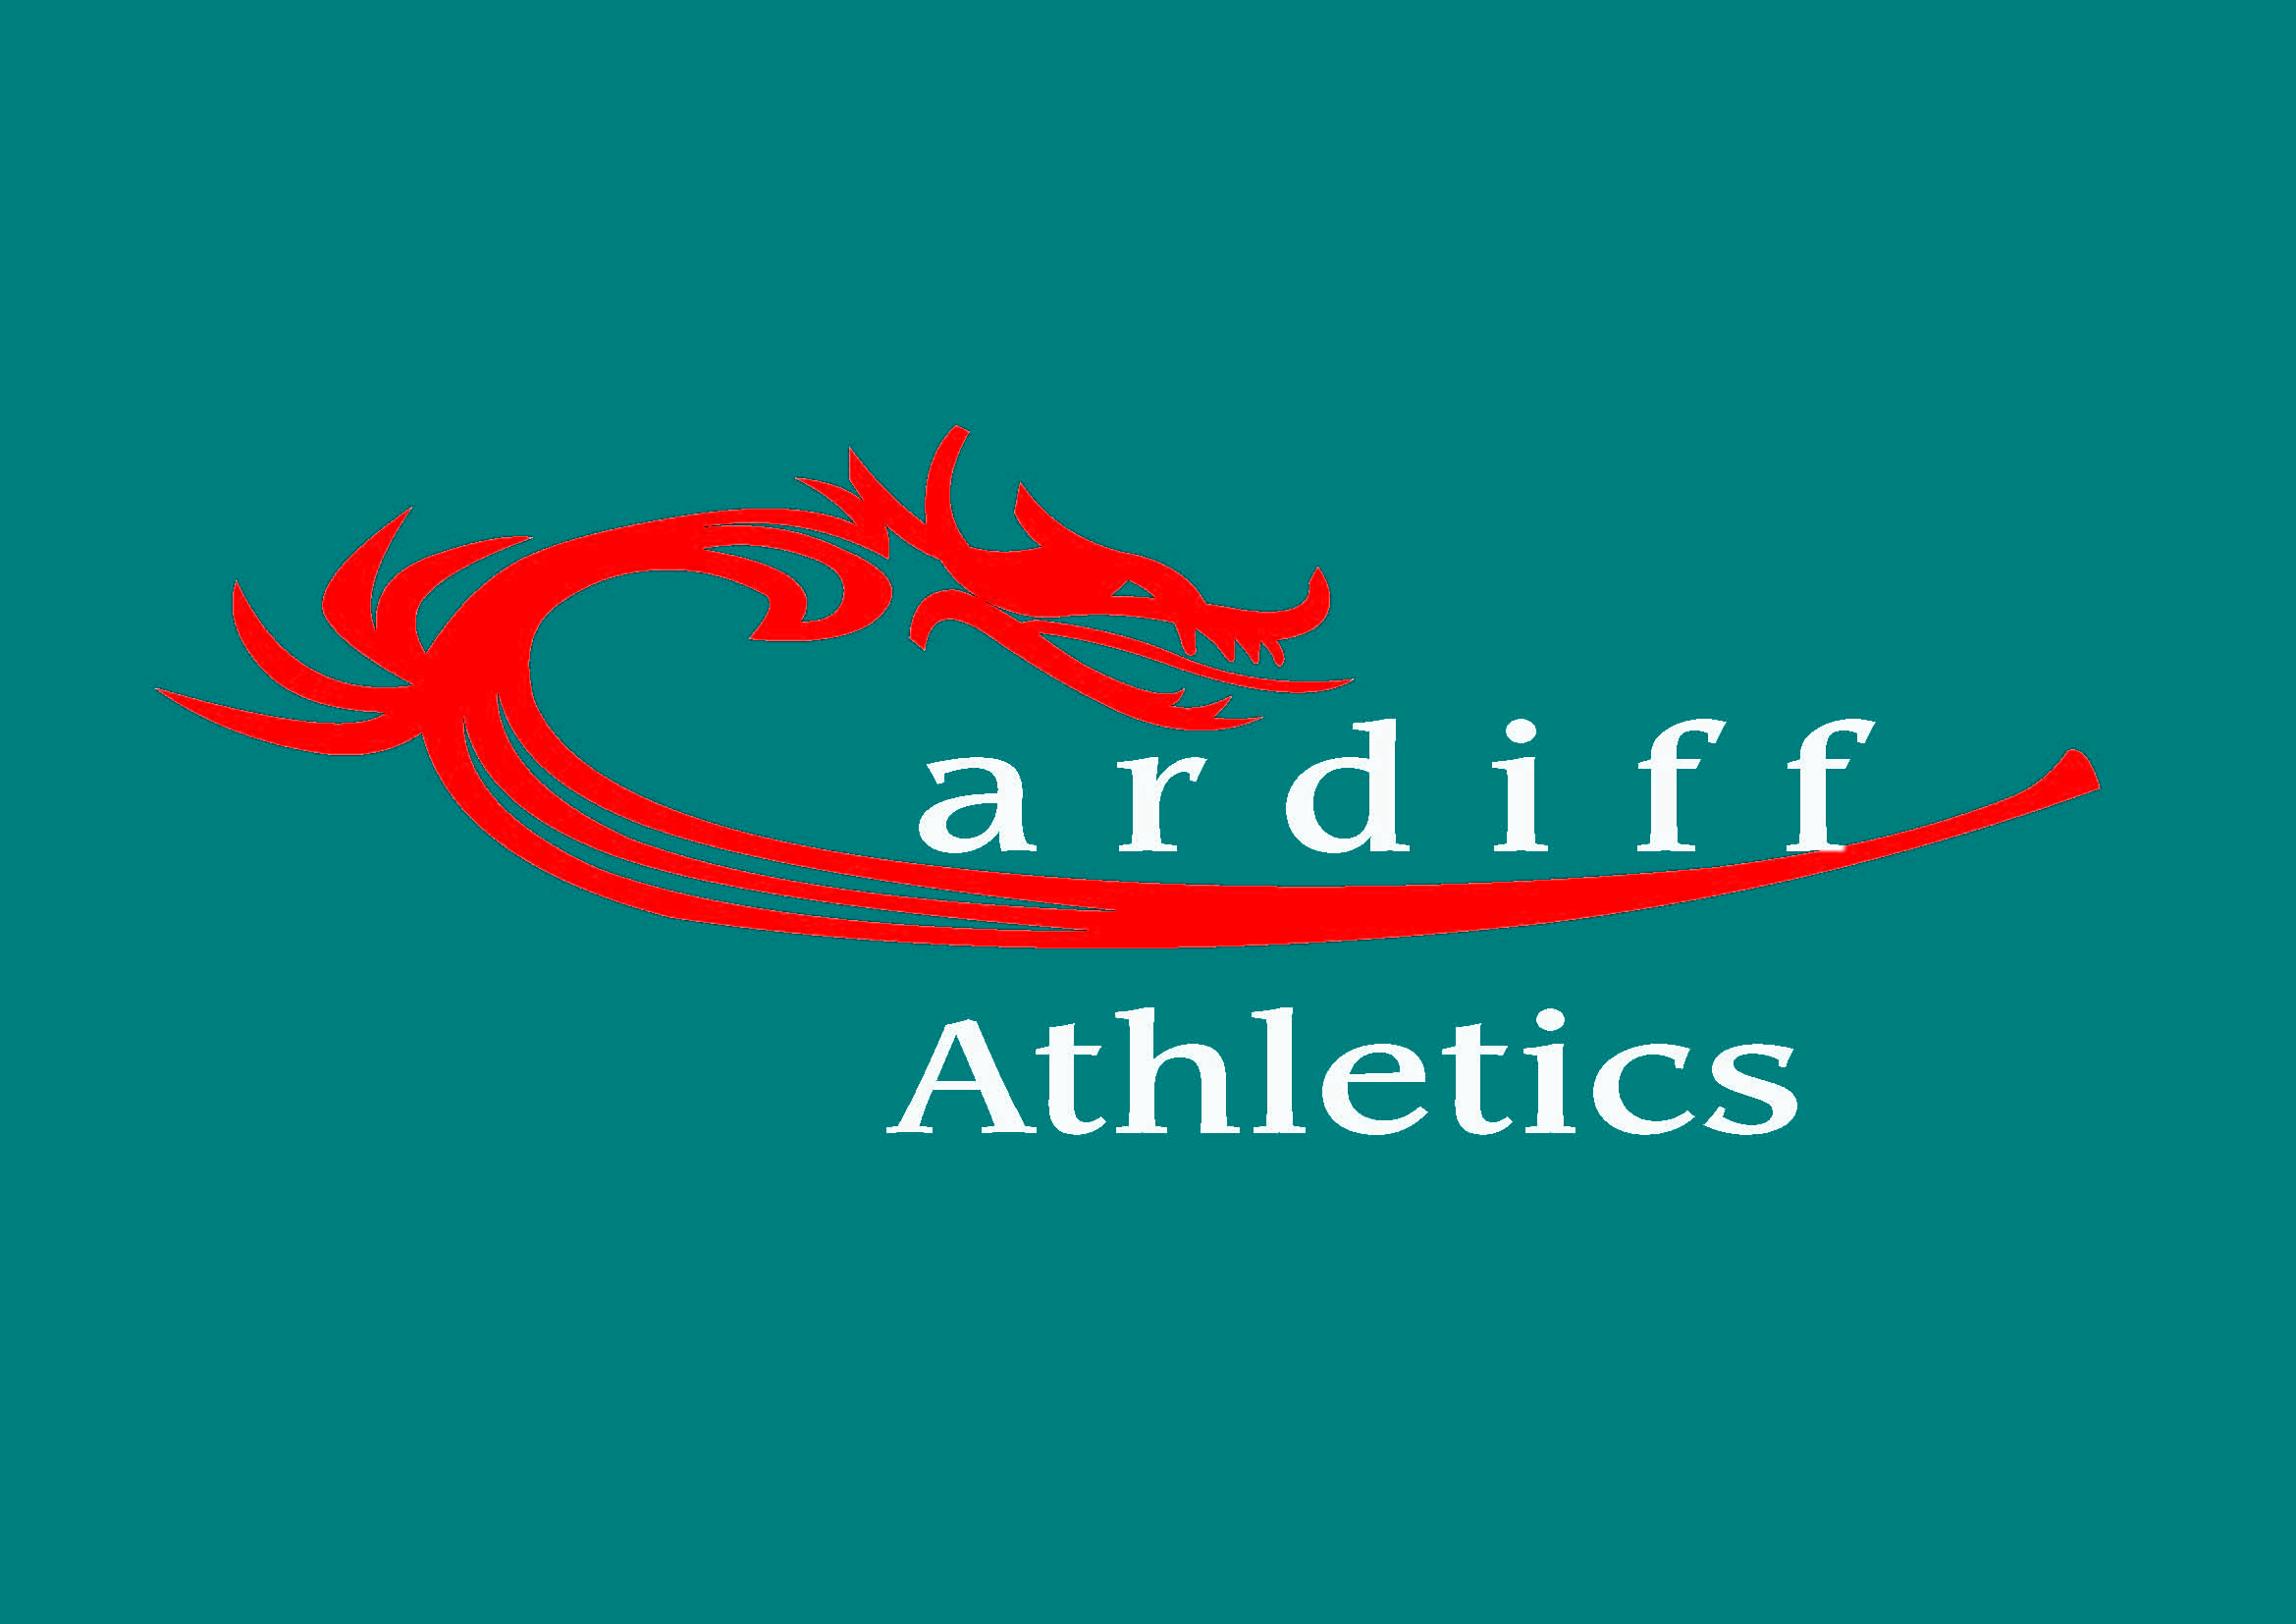 Cardiff Amateur Athletics Club